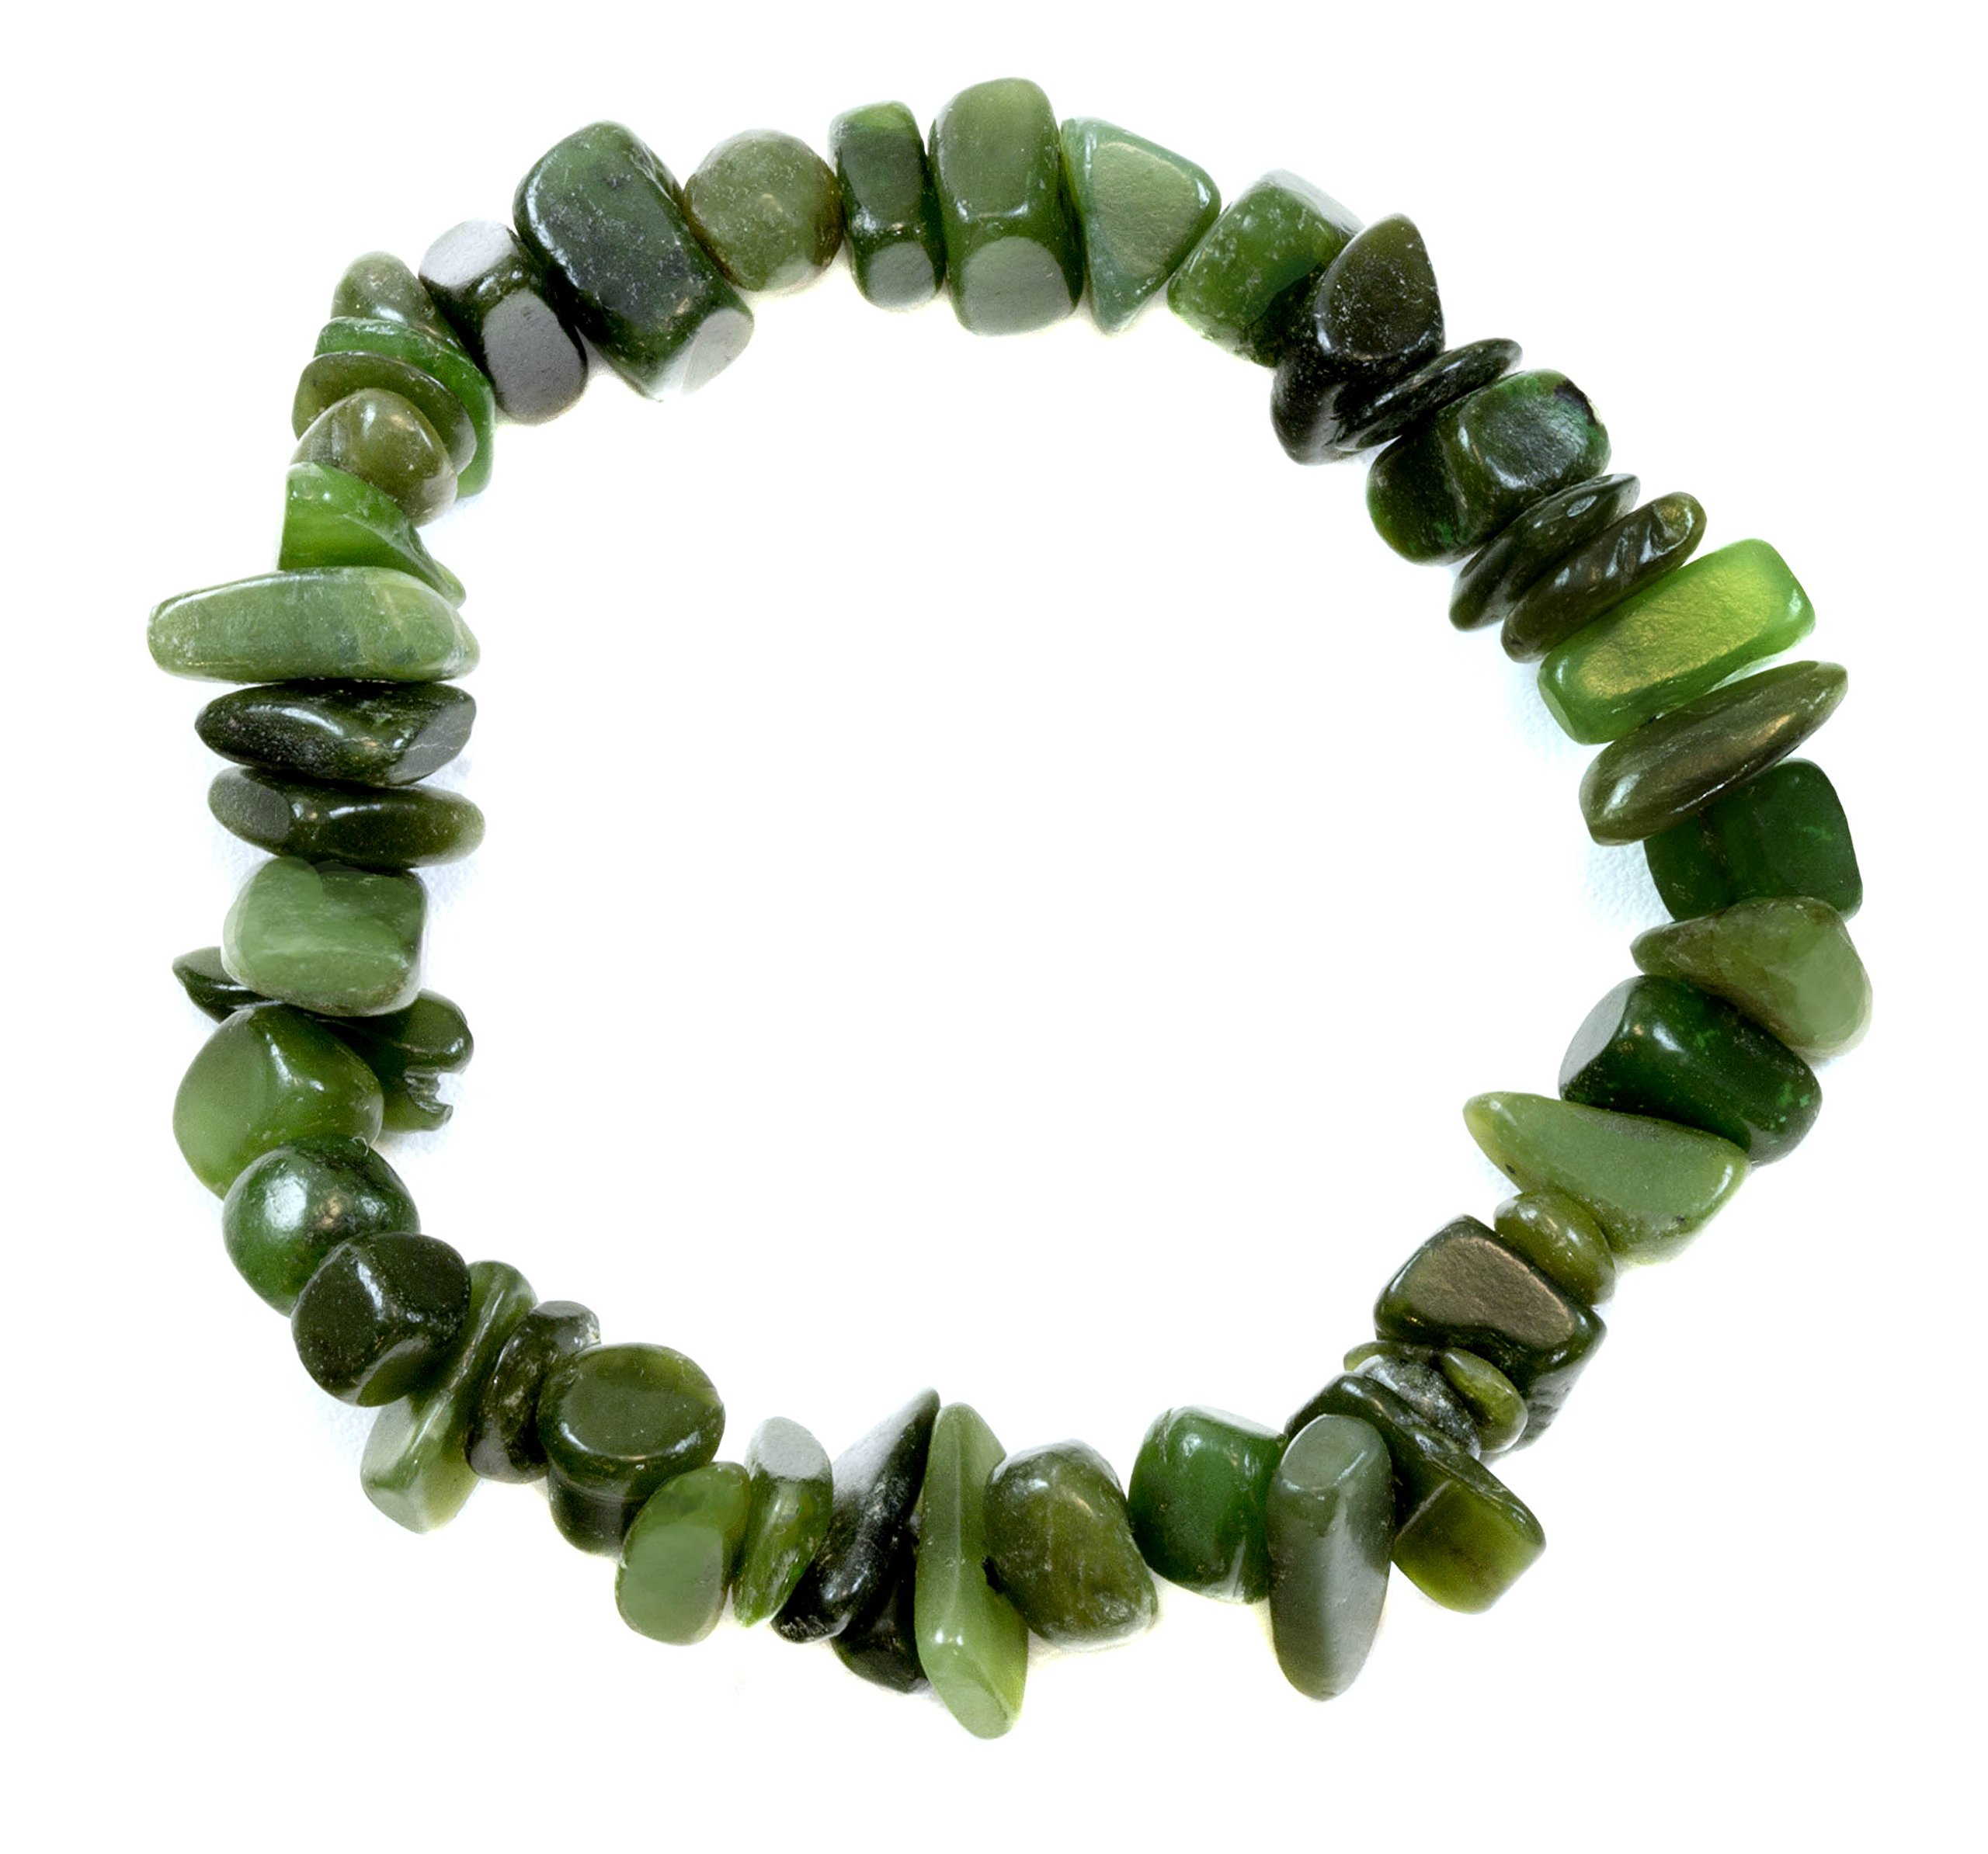 Jade Bracelet Green Nephrite Polished Nugget Style Stones Stretch Style Adjustable 7'' by Spyglass Designs (Image #1)